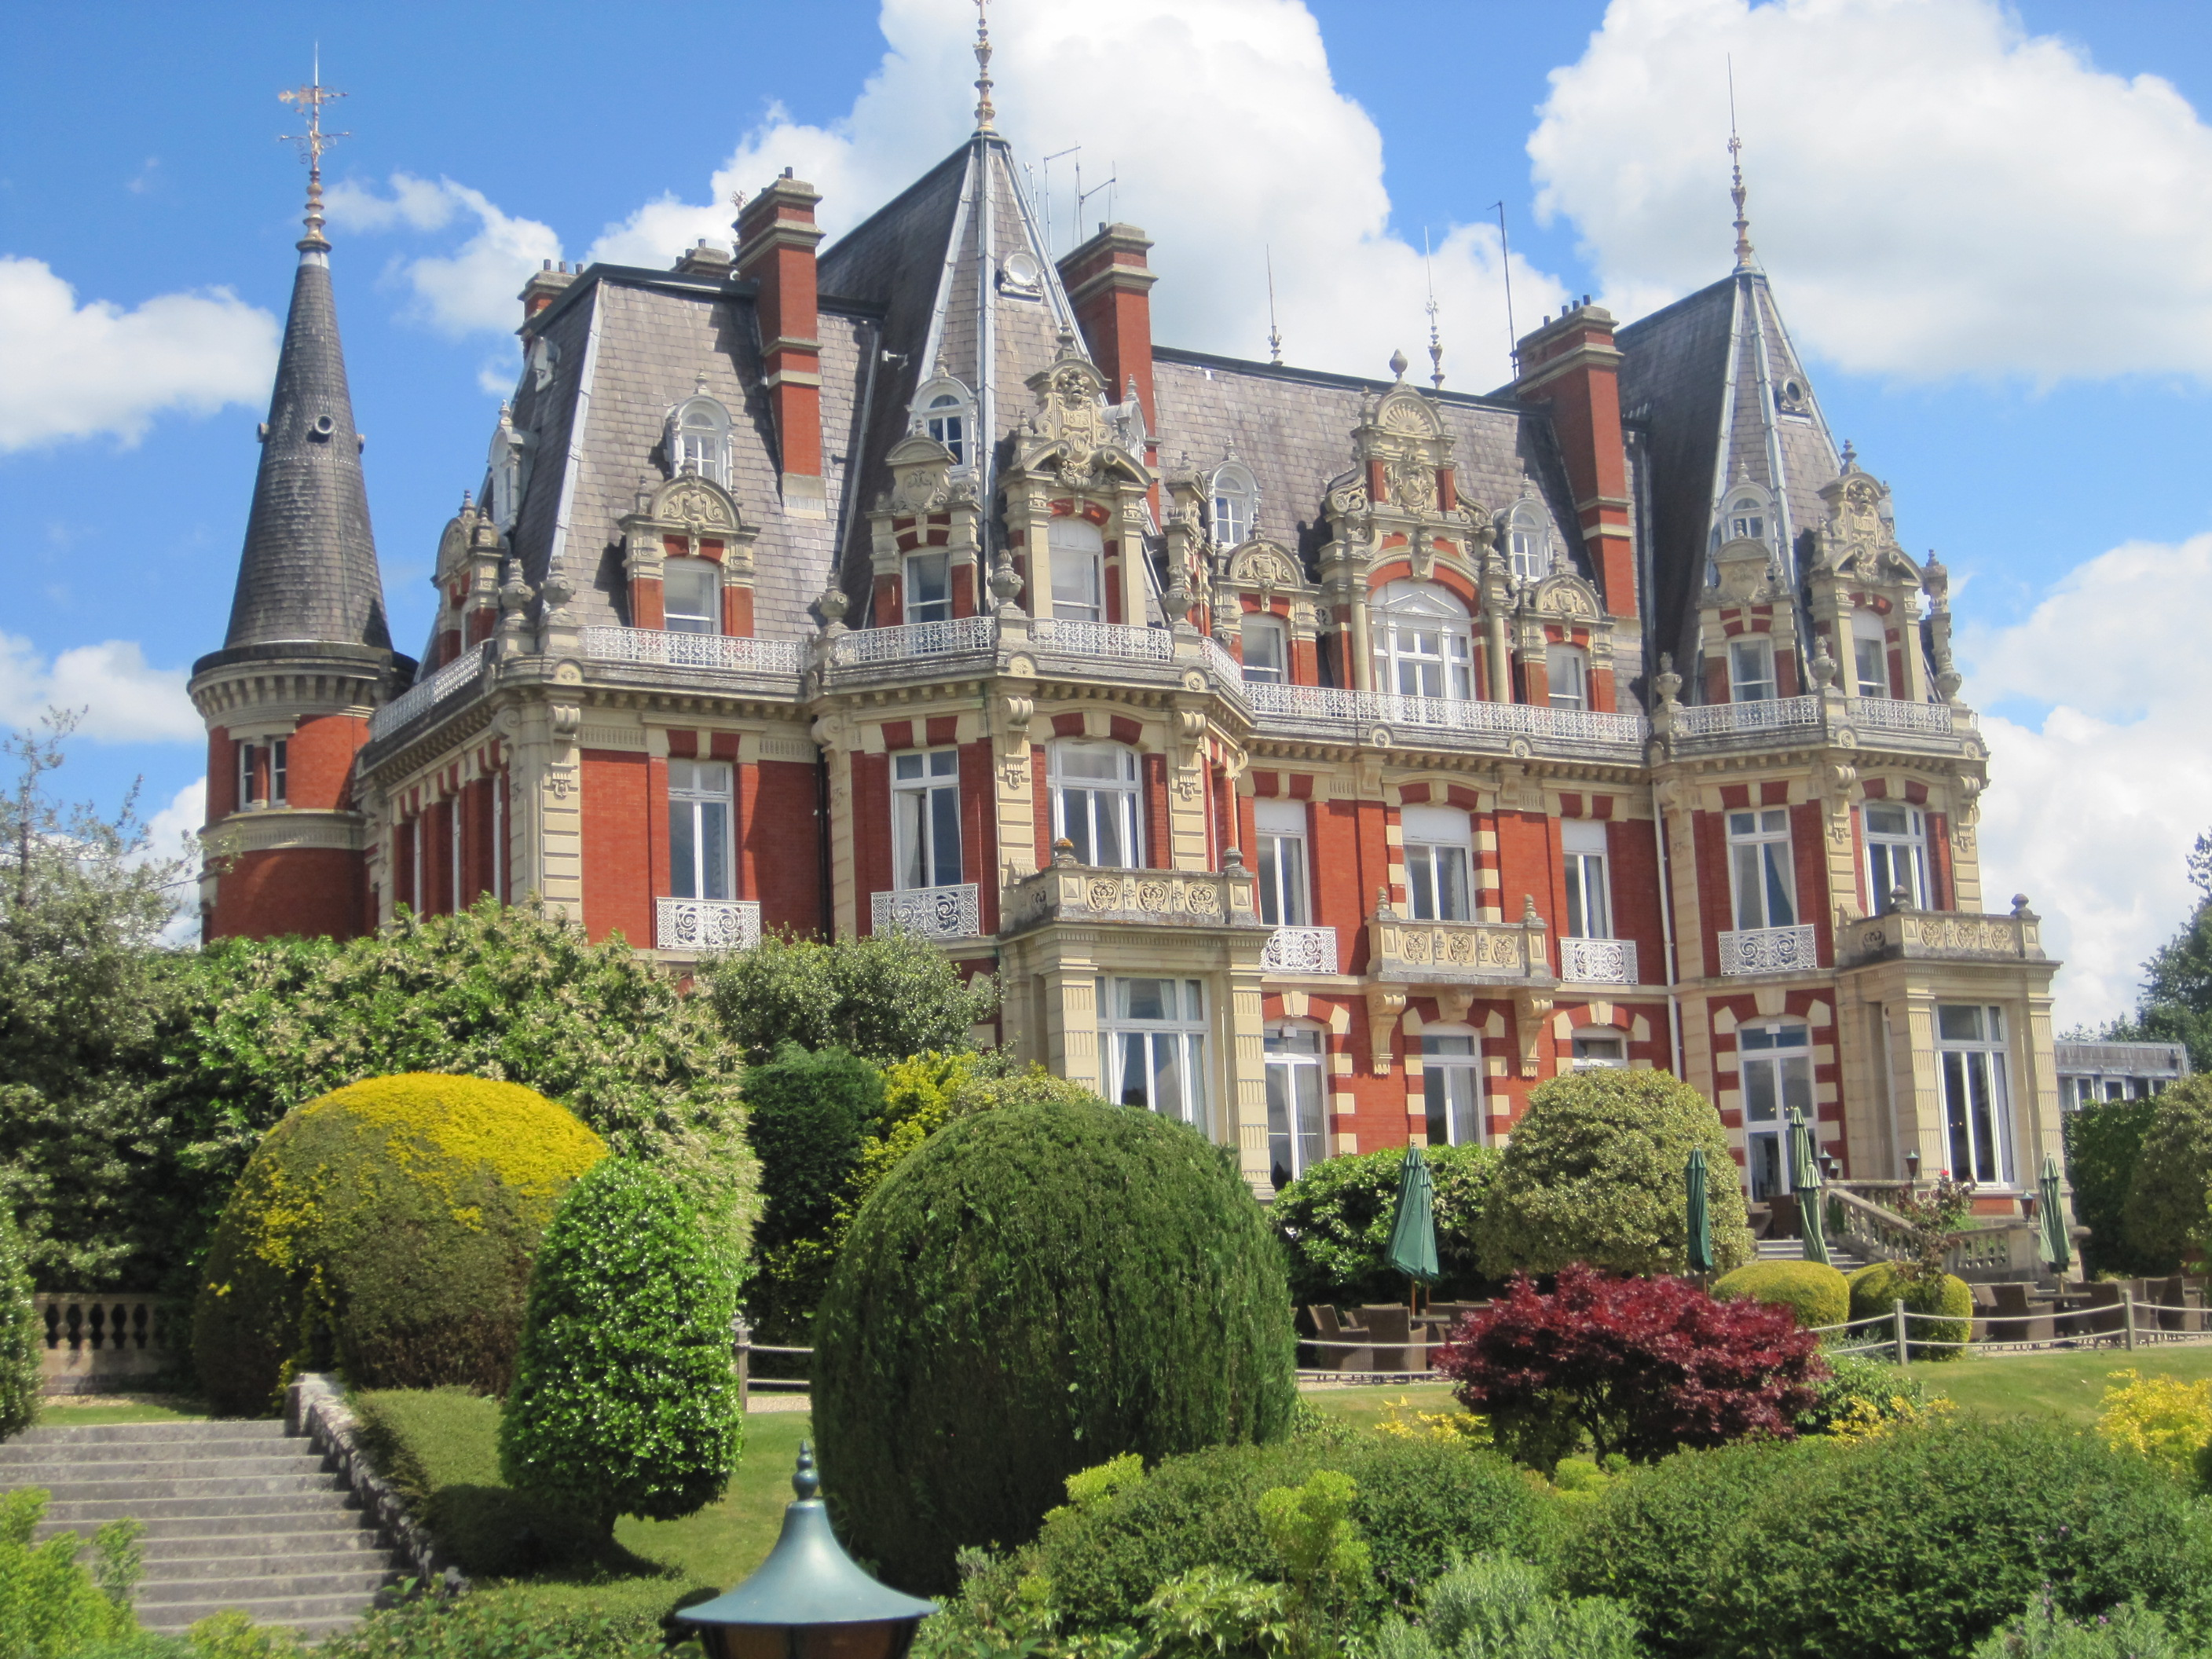 A Local visit to Chateau Impney Hotel